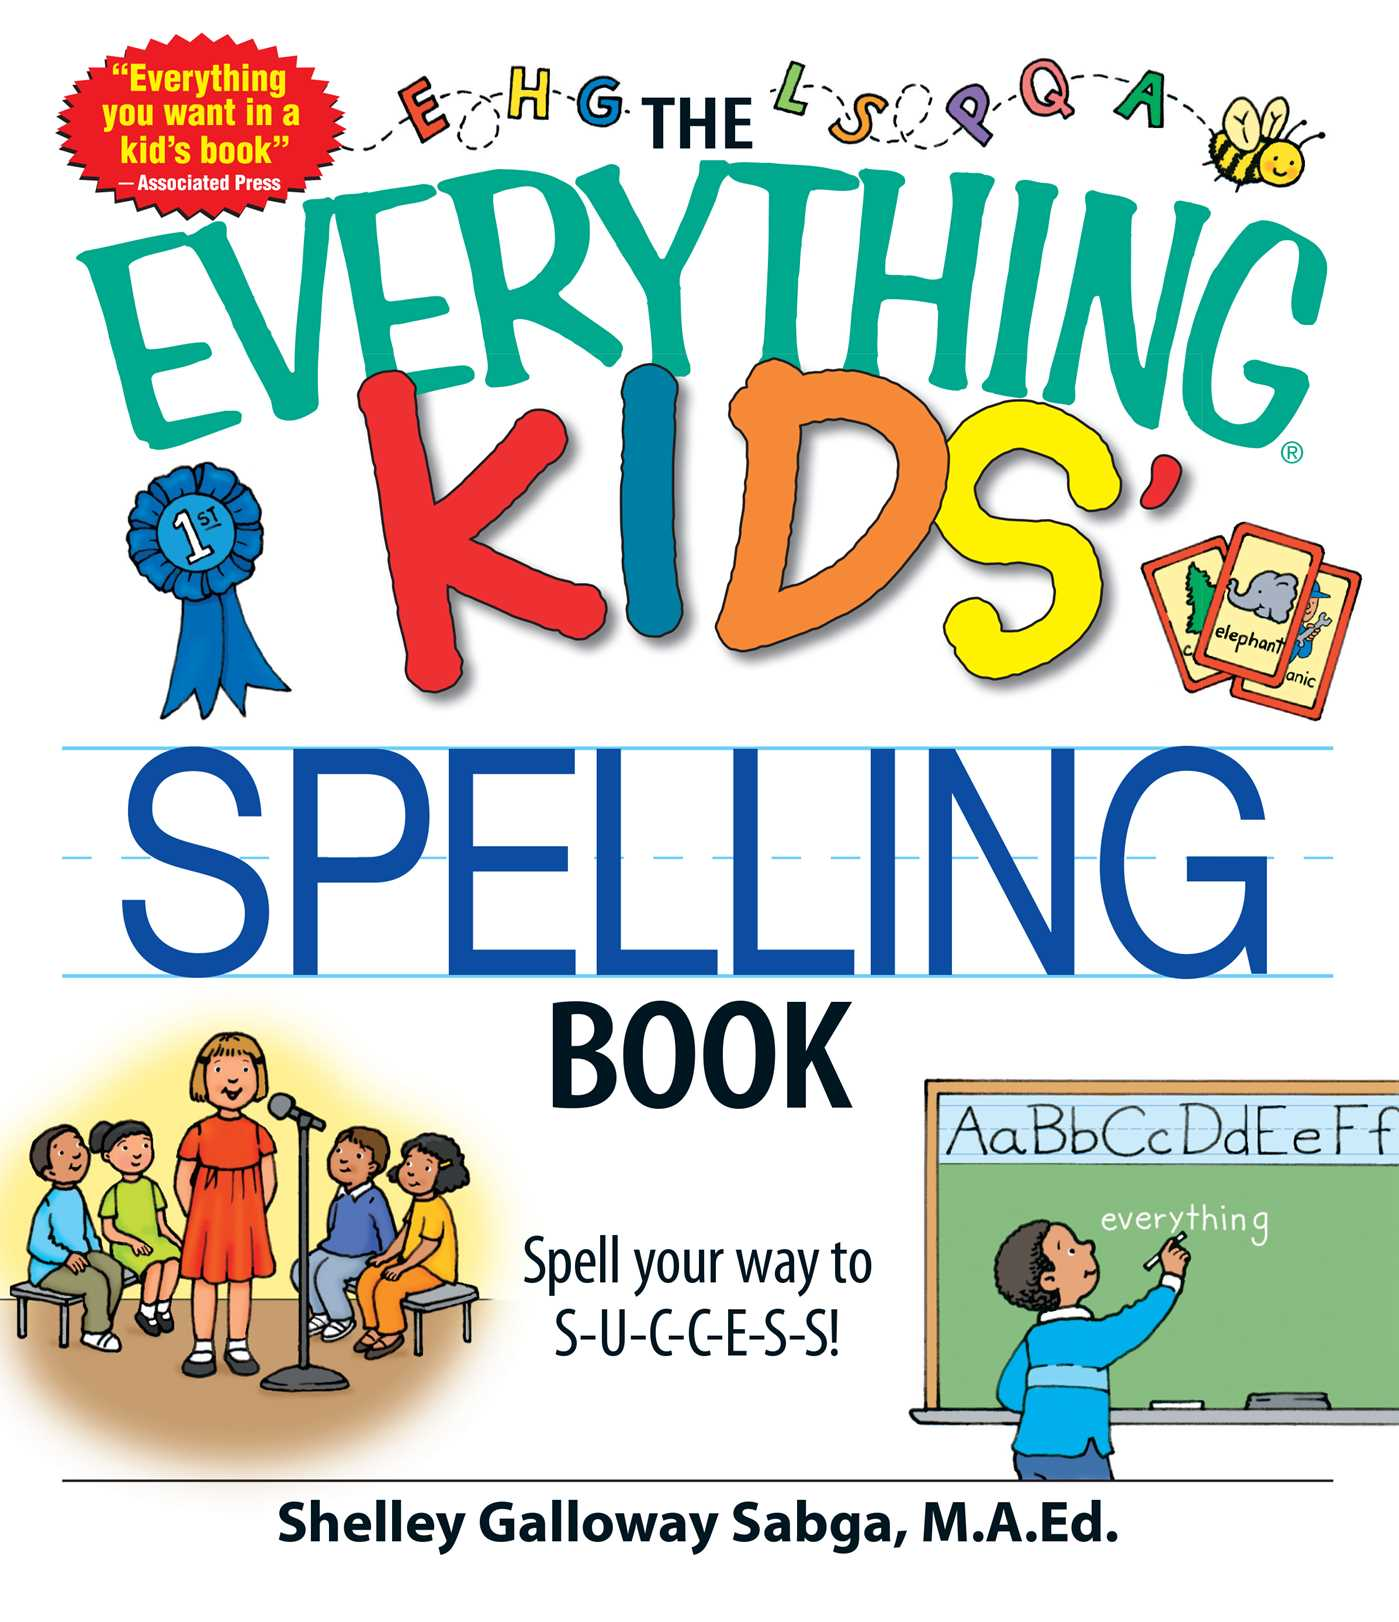 The Everything Kids Spelling Book Ebook By Shelley Galloway Sabga